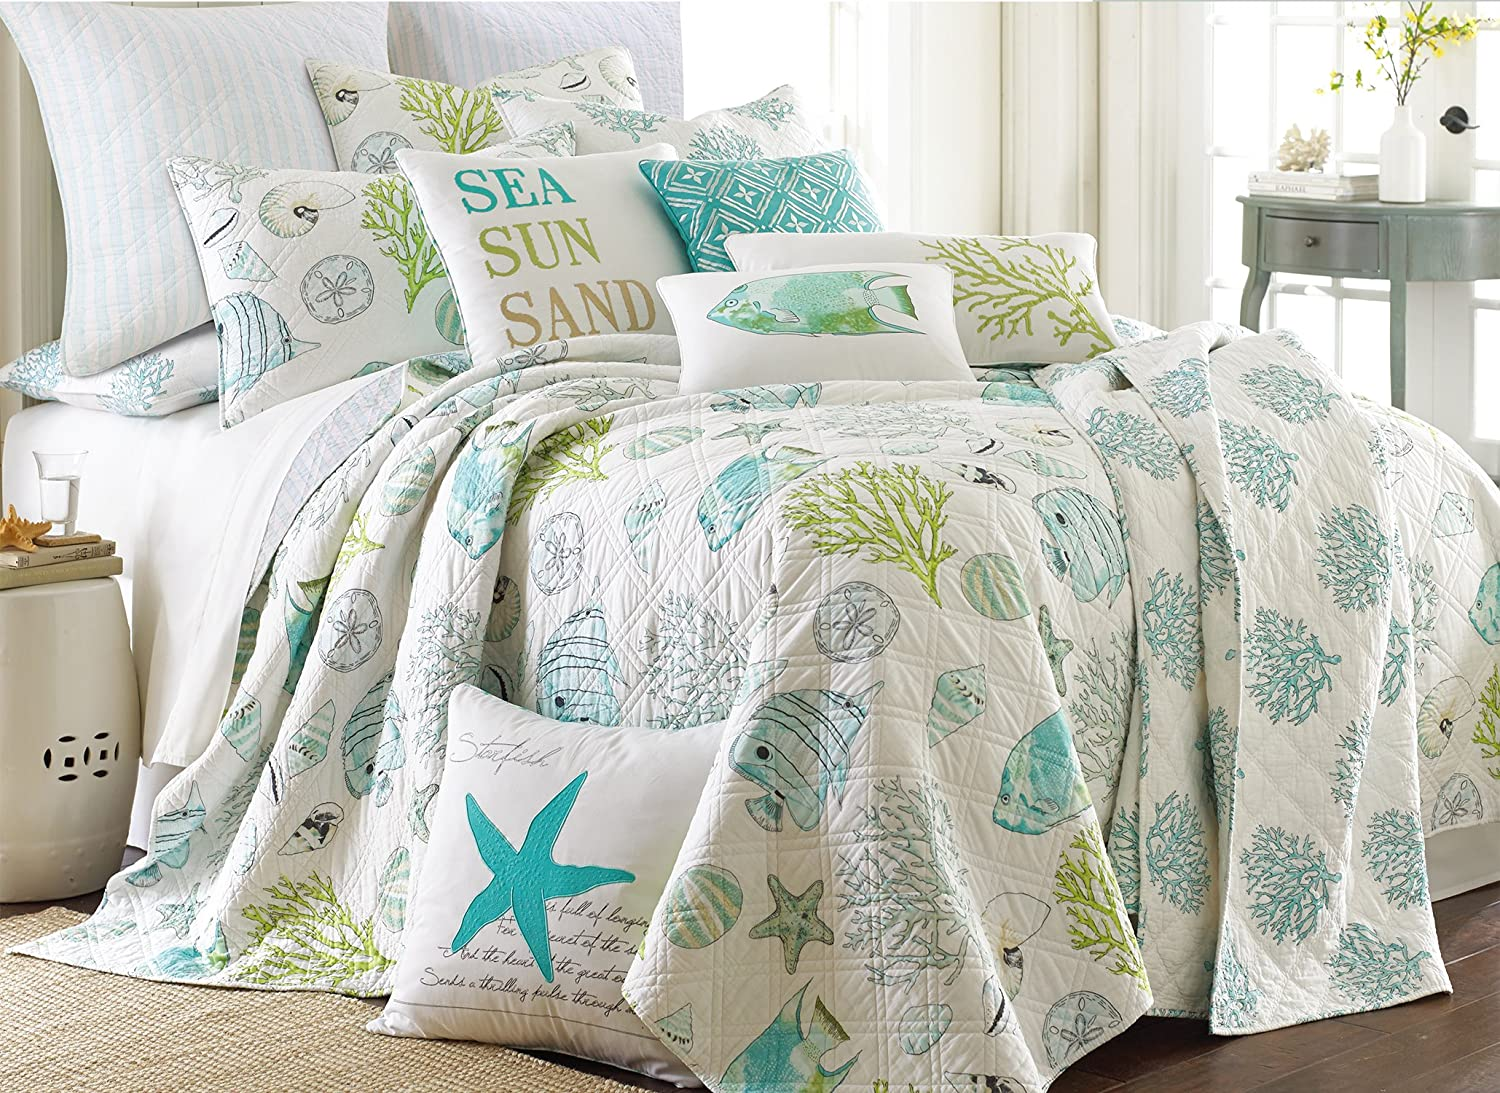 levtex home biscayne quilt set king quilt two king pillow shams tropical fish in aqua green coral quilt size 106x92in and pillow sham size